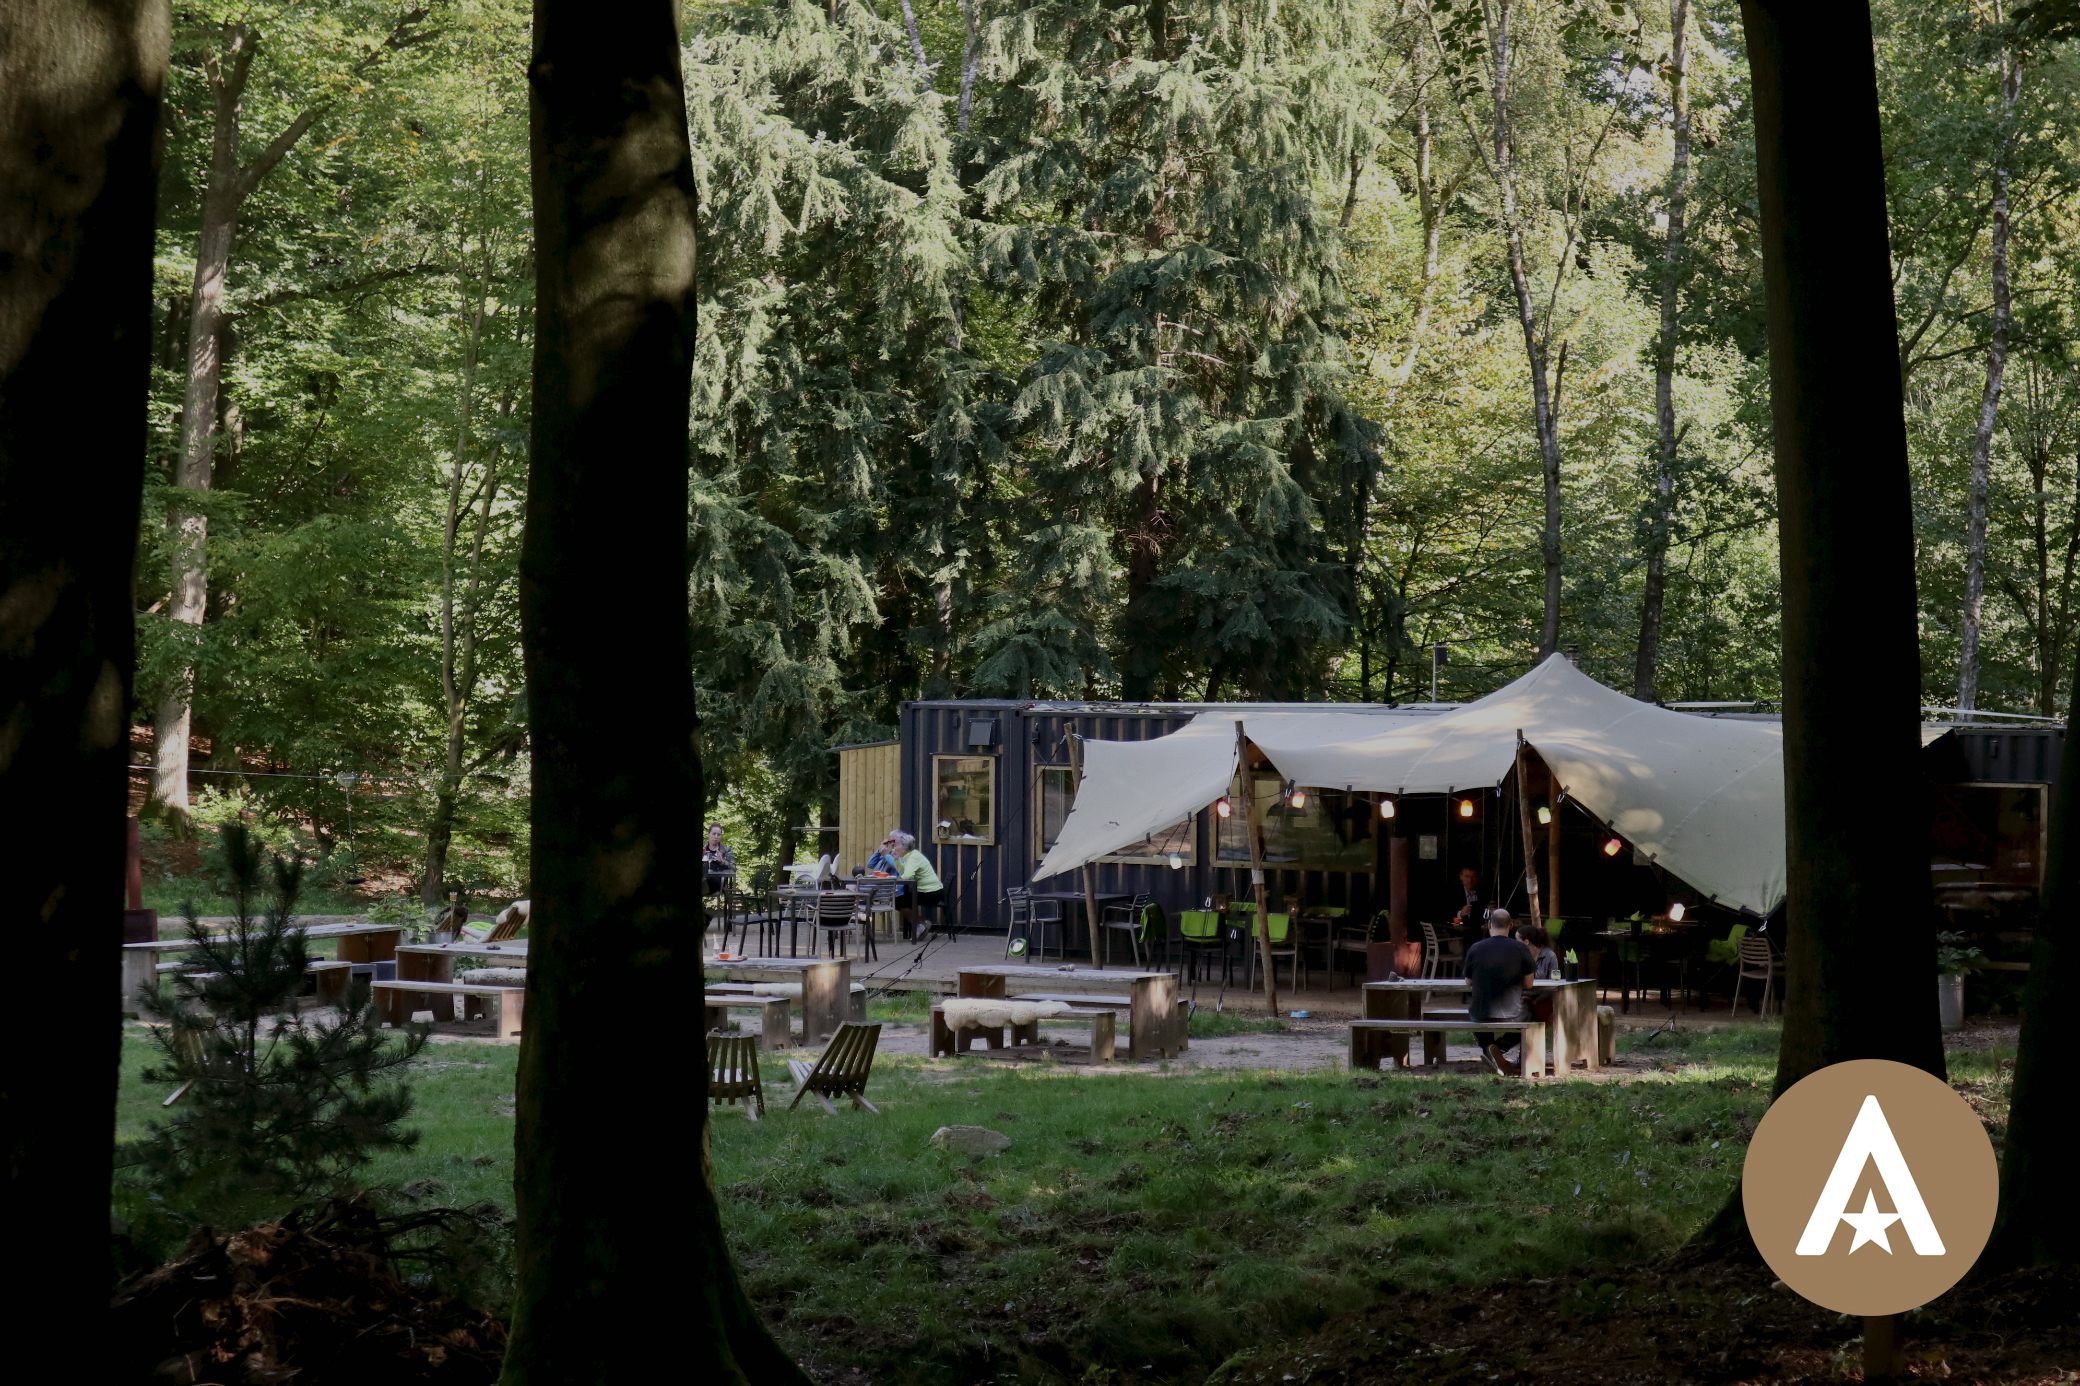 Pop-up restaurant - Woodz - Buitenplaats Beekhuizen